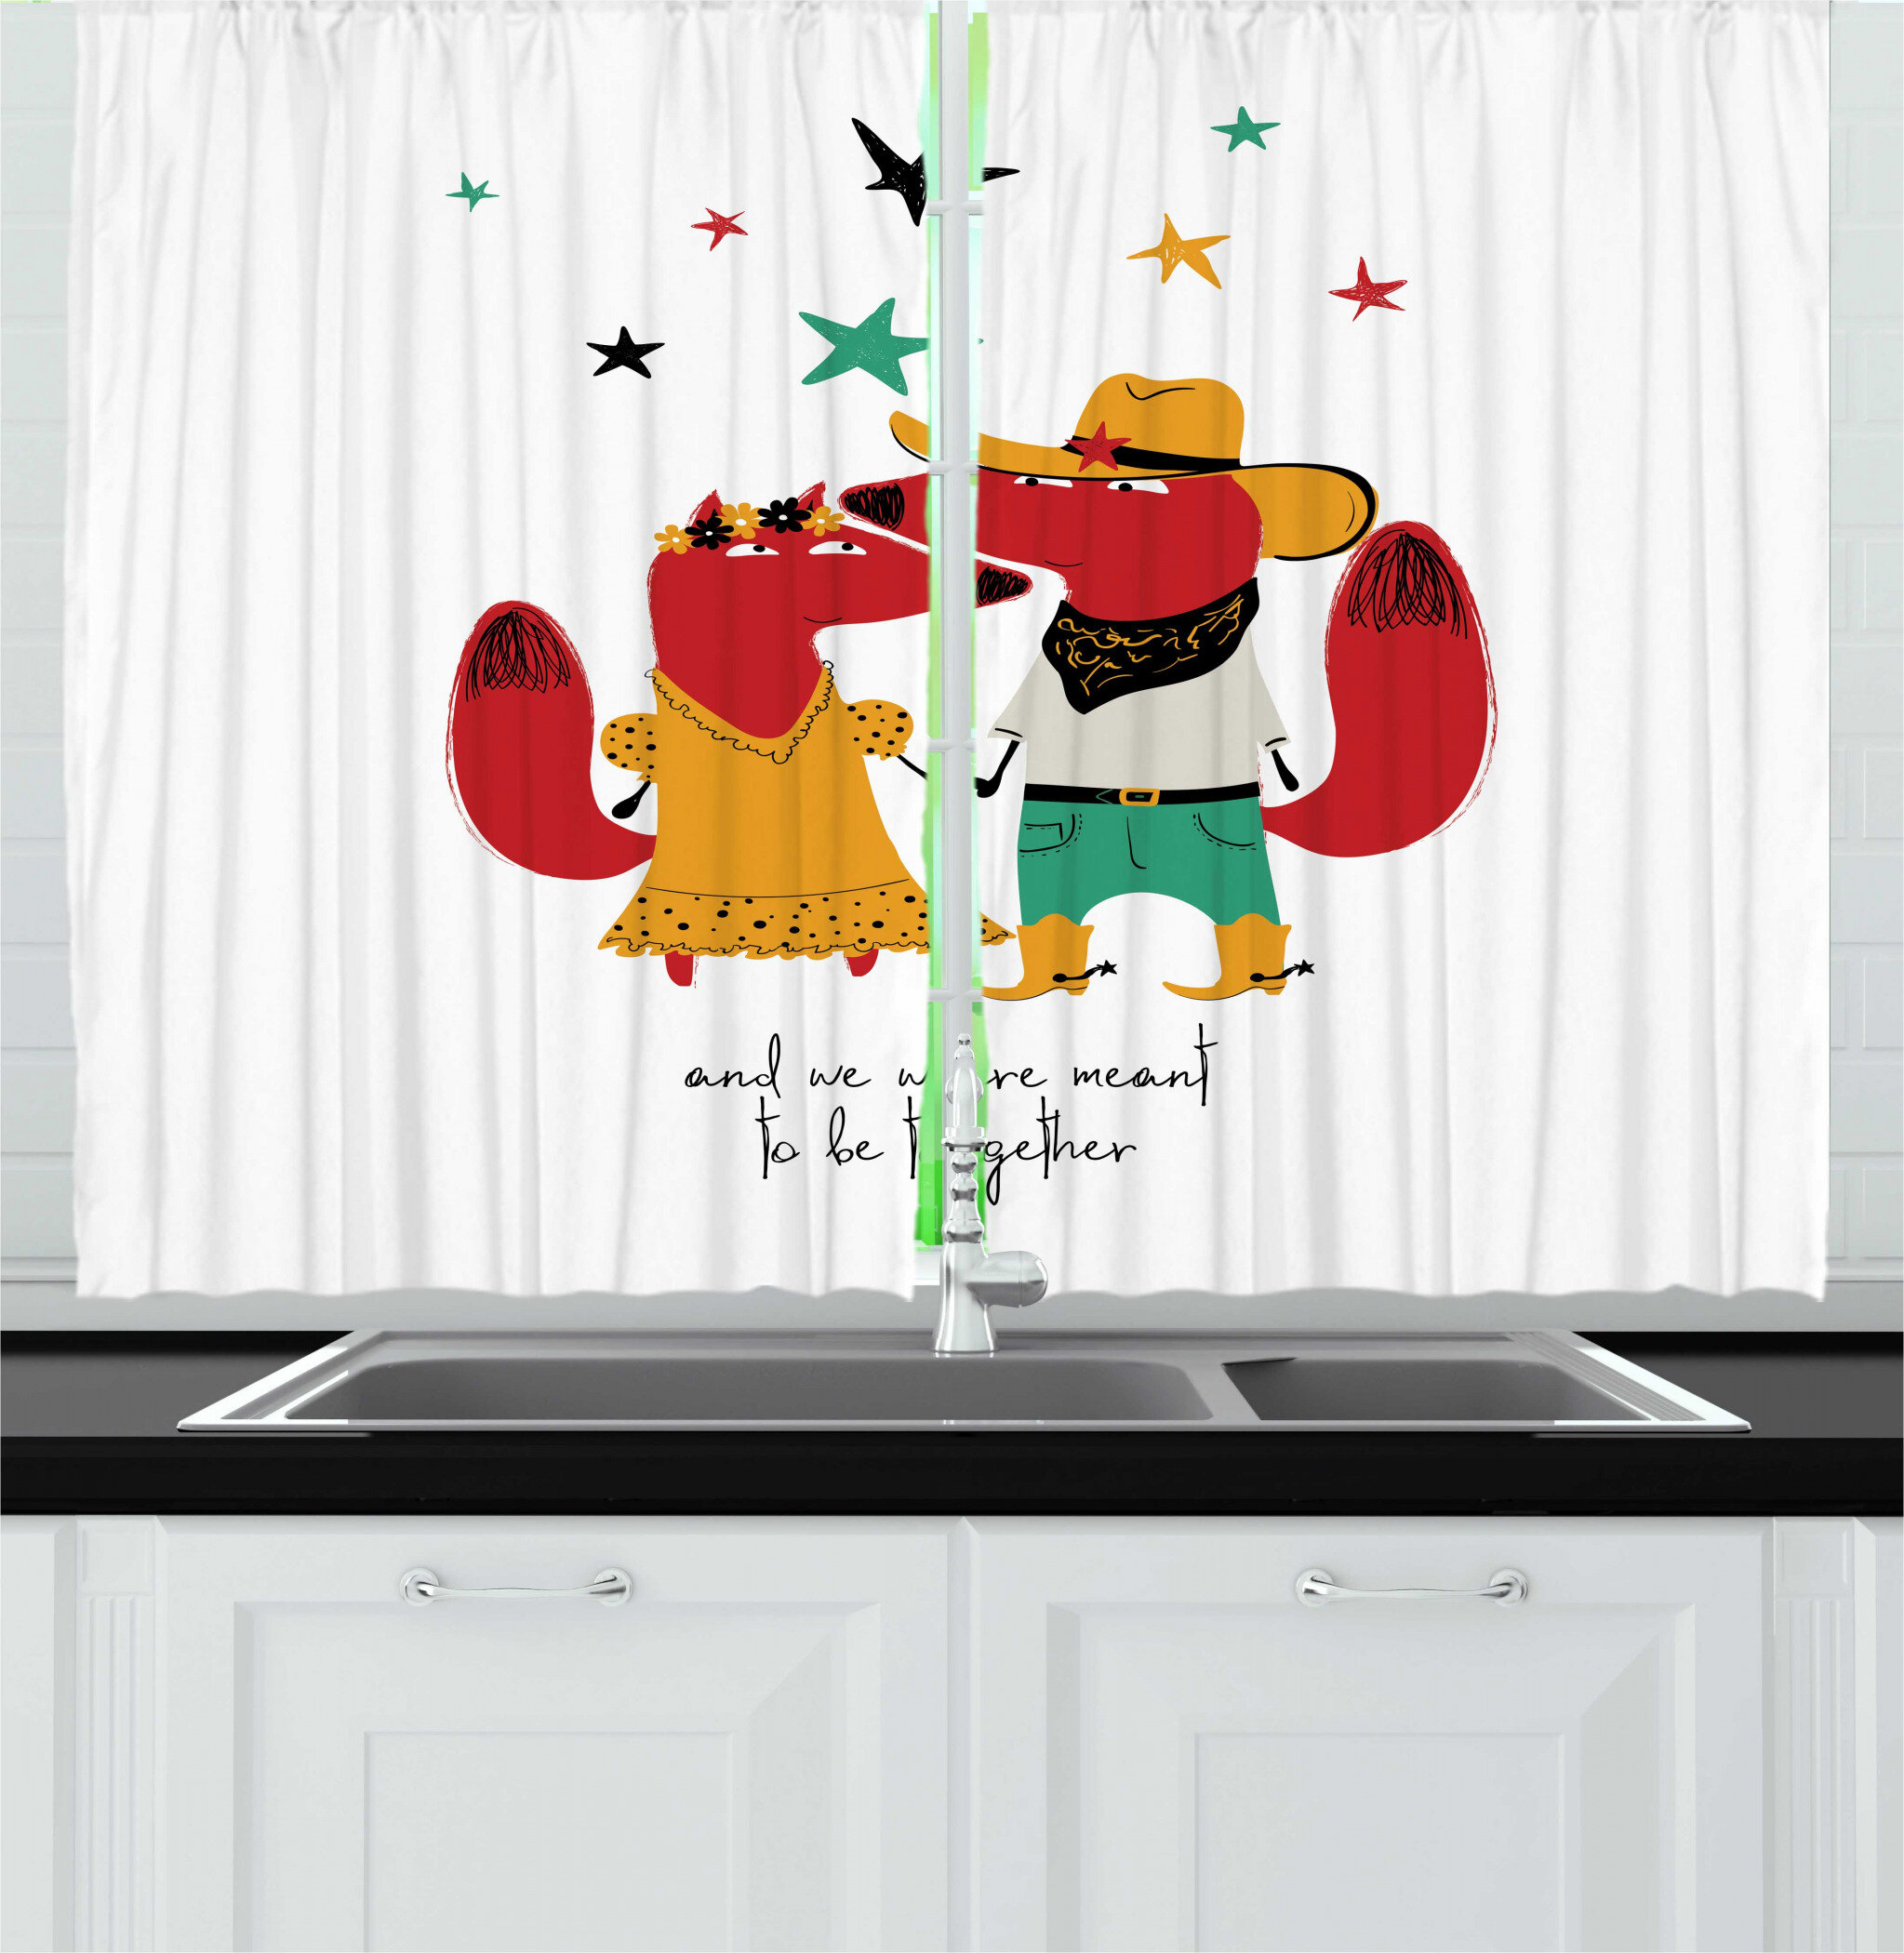 East Urban Home 2 Piece Fox Love Themed Romantic Cowboy Animal Couple And We Were Meant To Be Together Words Kitchen Curtain Set Wayfair